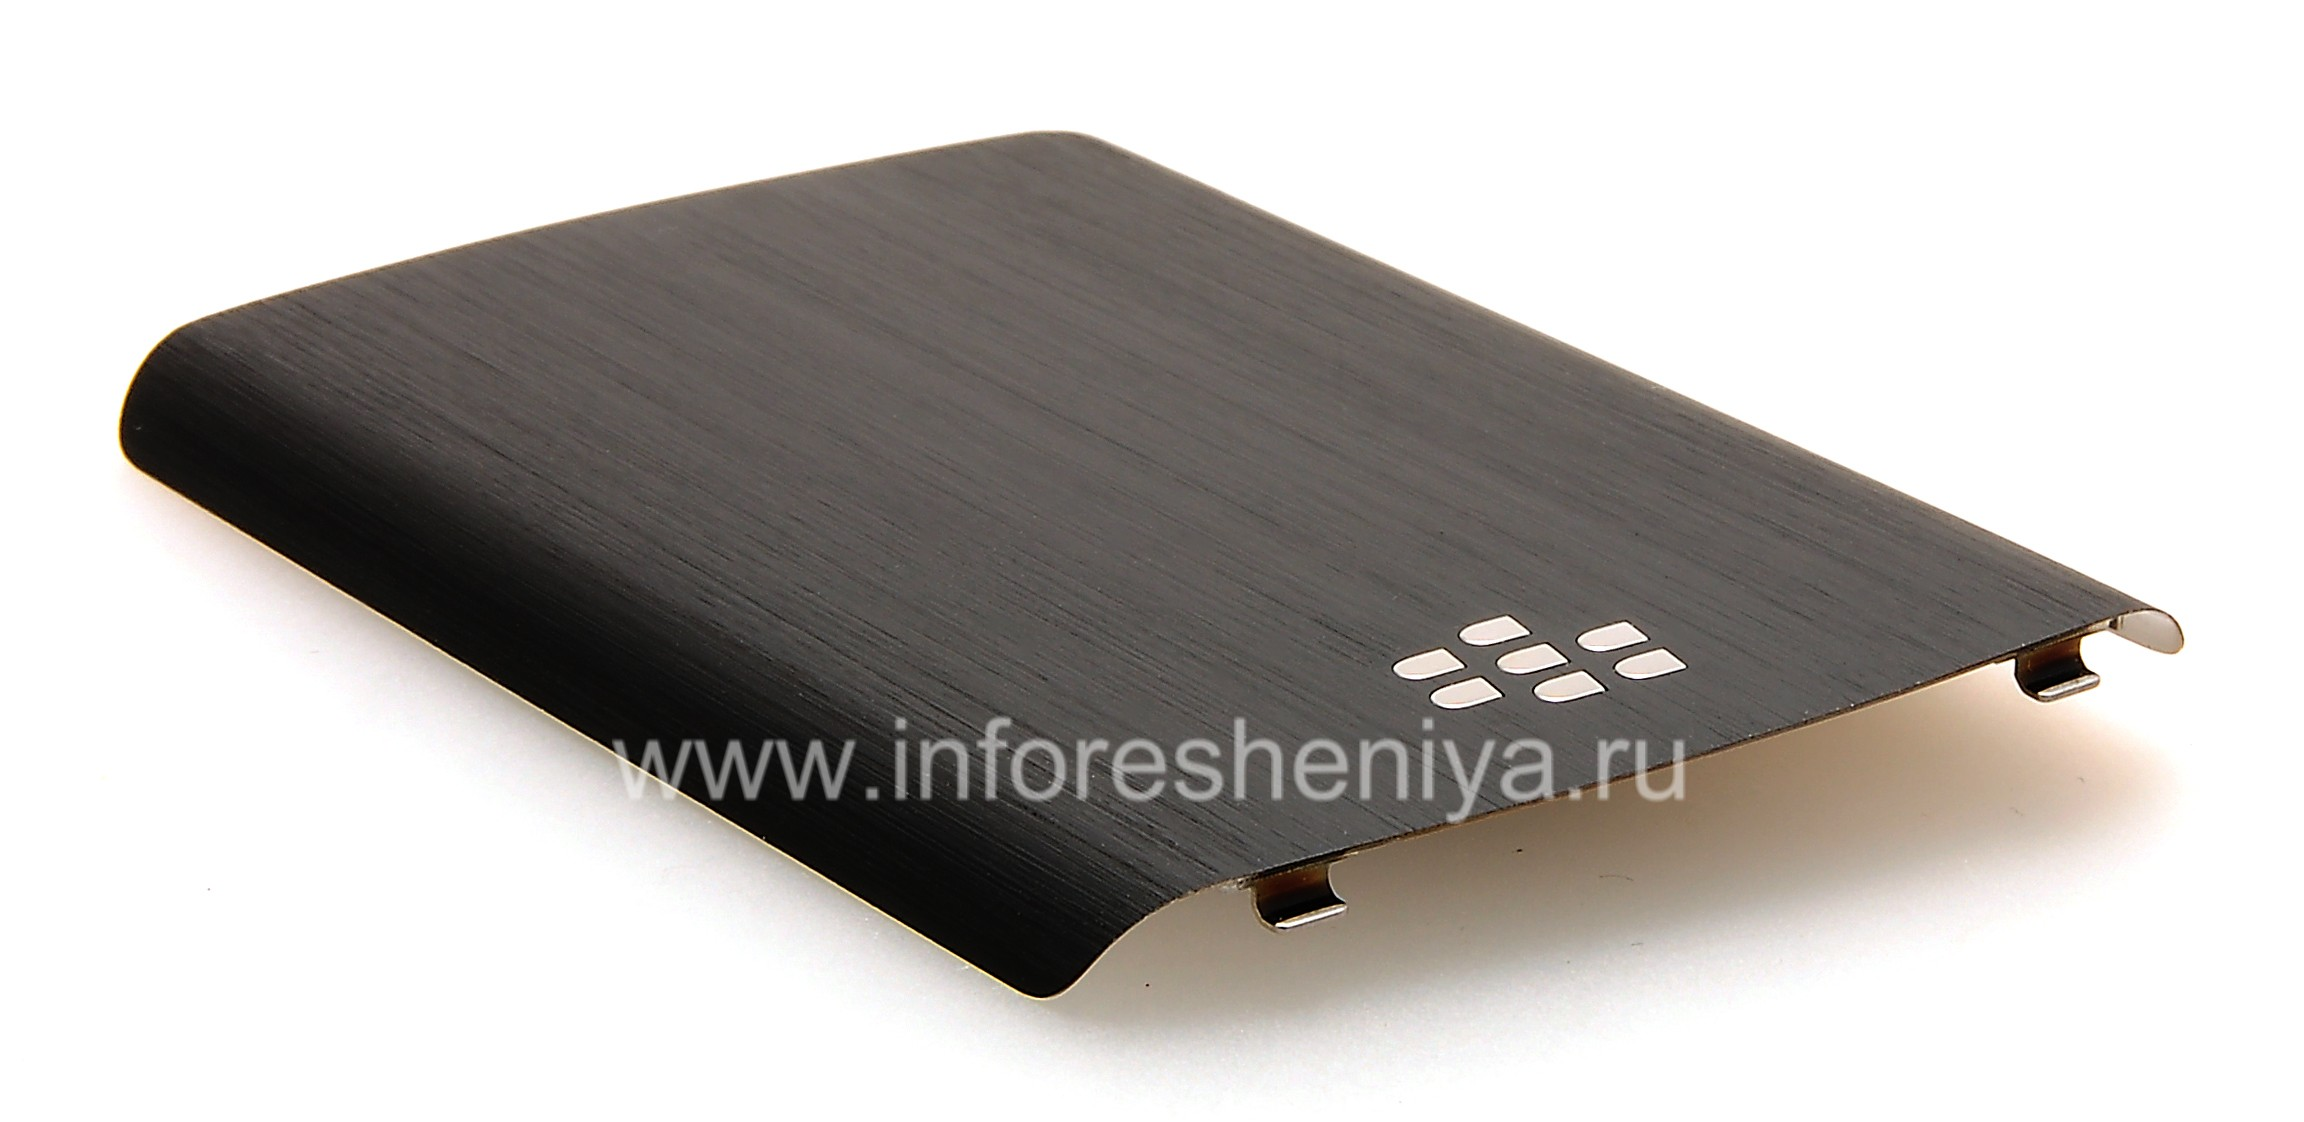 Blackberry storm 9550 price in bangalore dating 10